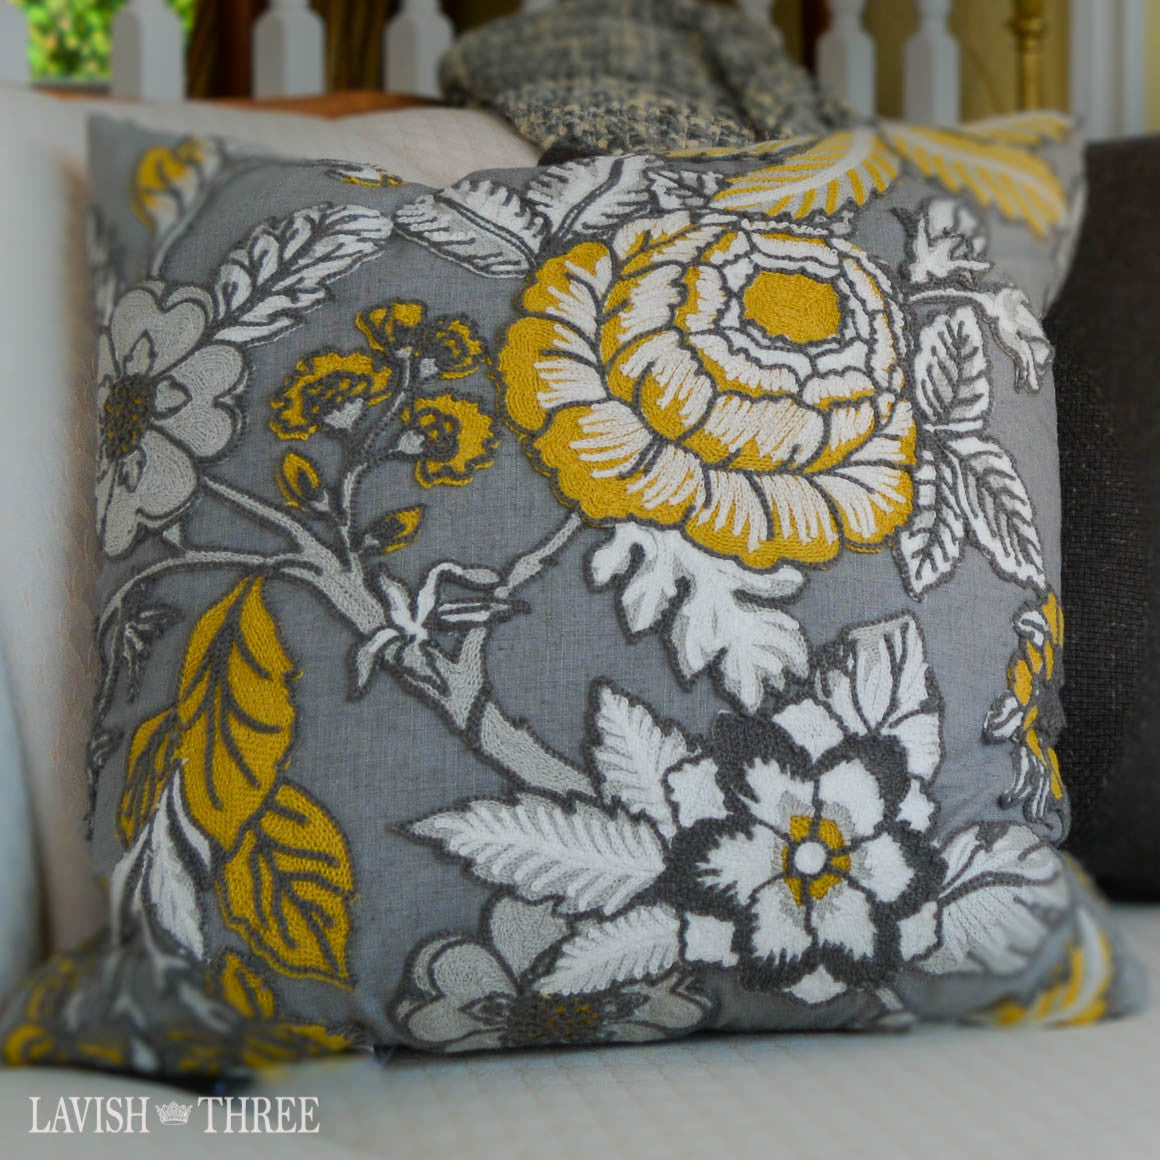 Floral  large decorative throw accent  pillow grey, yellow, white